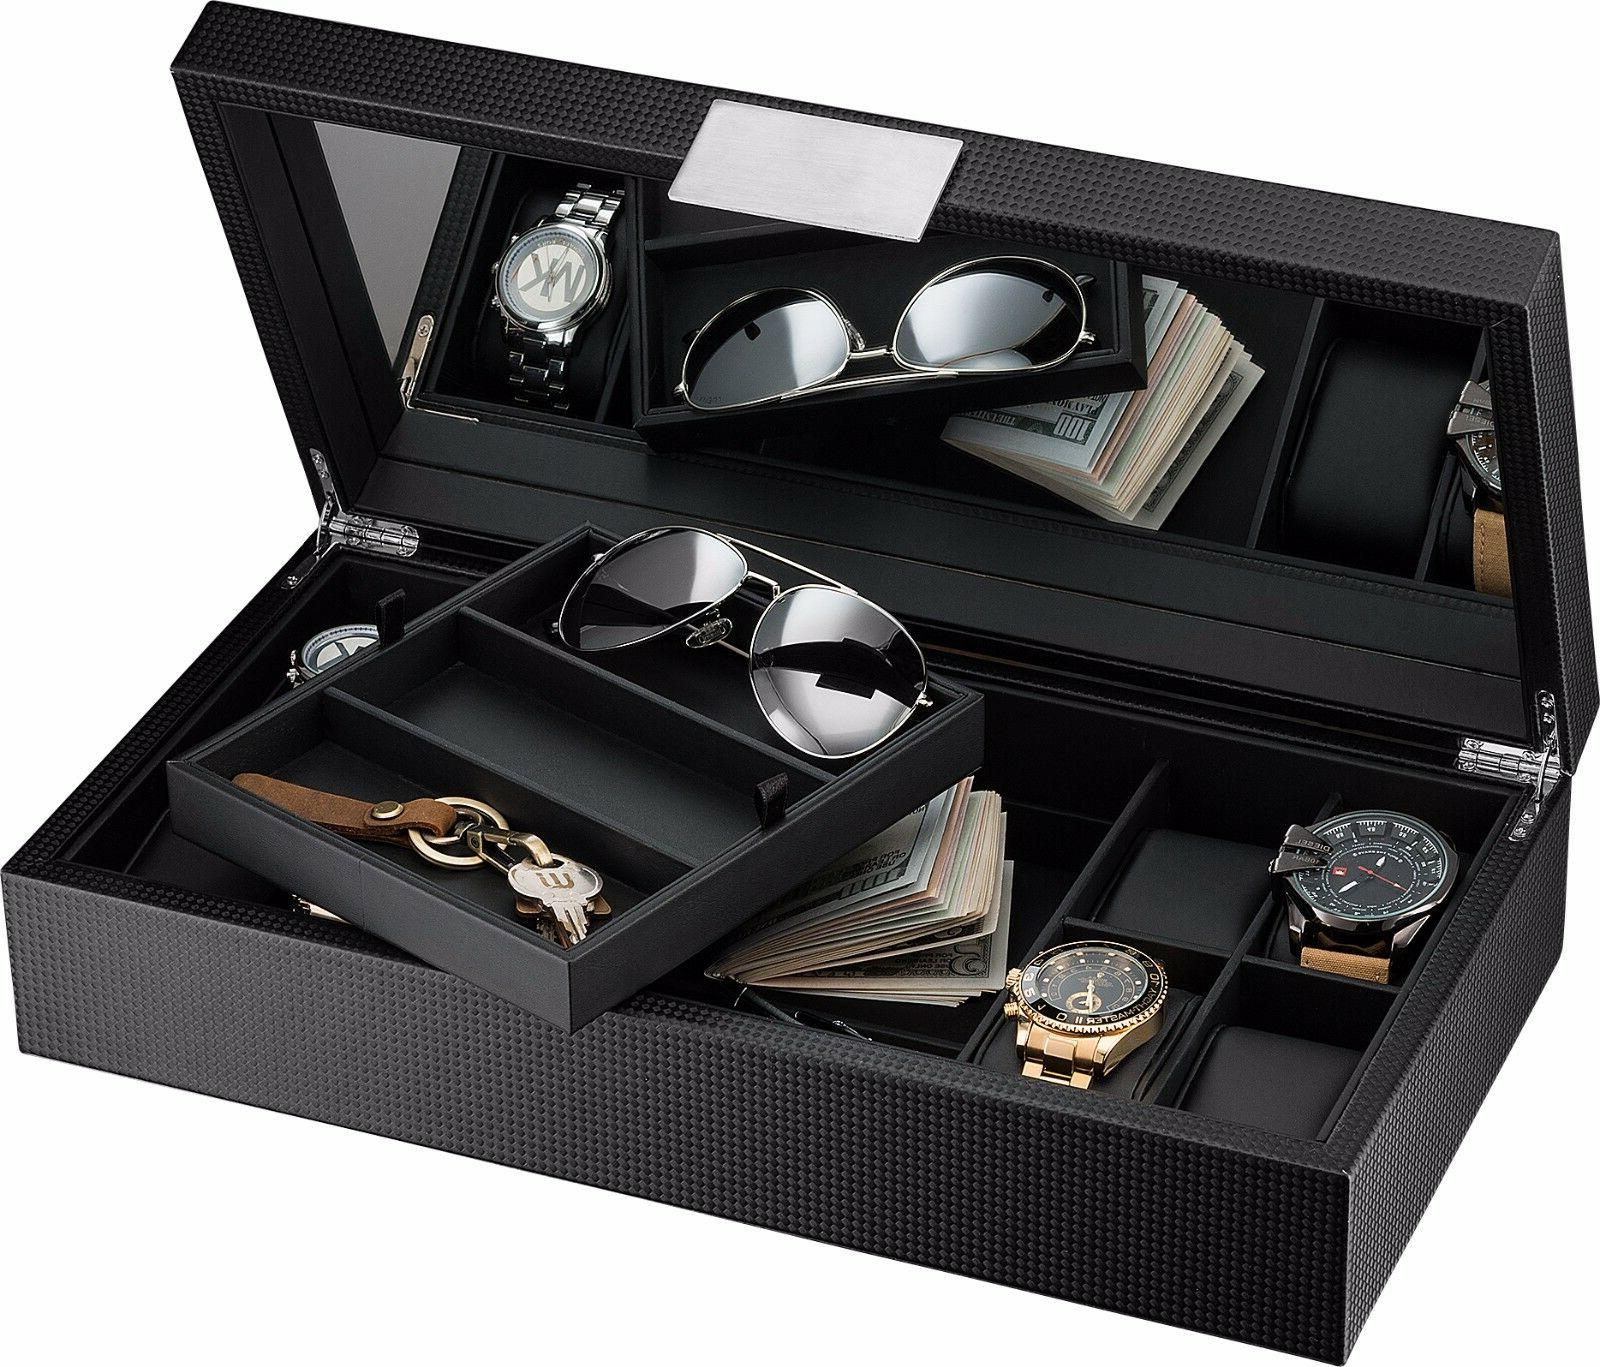 Glenor Co Luxury Watch and Sunglasses Box with Valet Tray fo